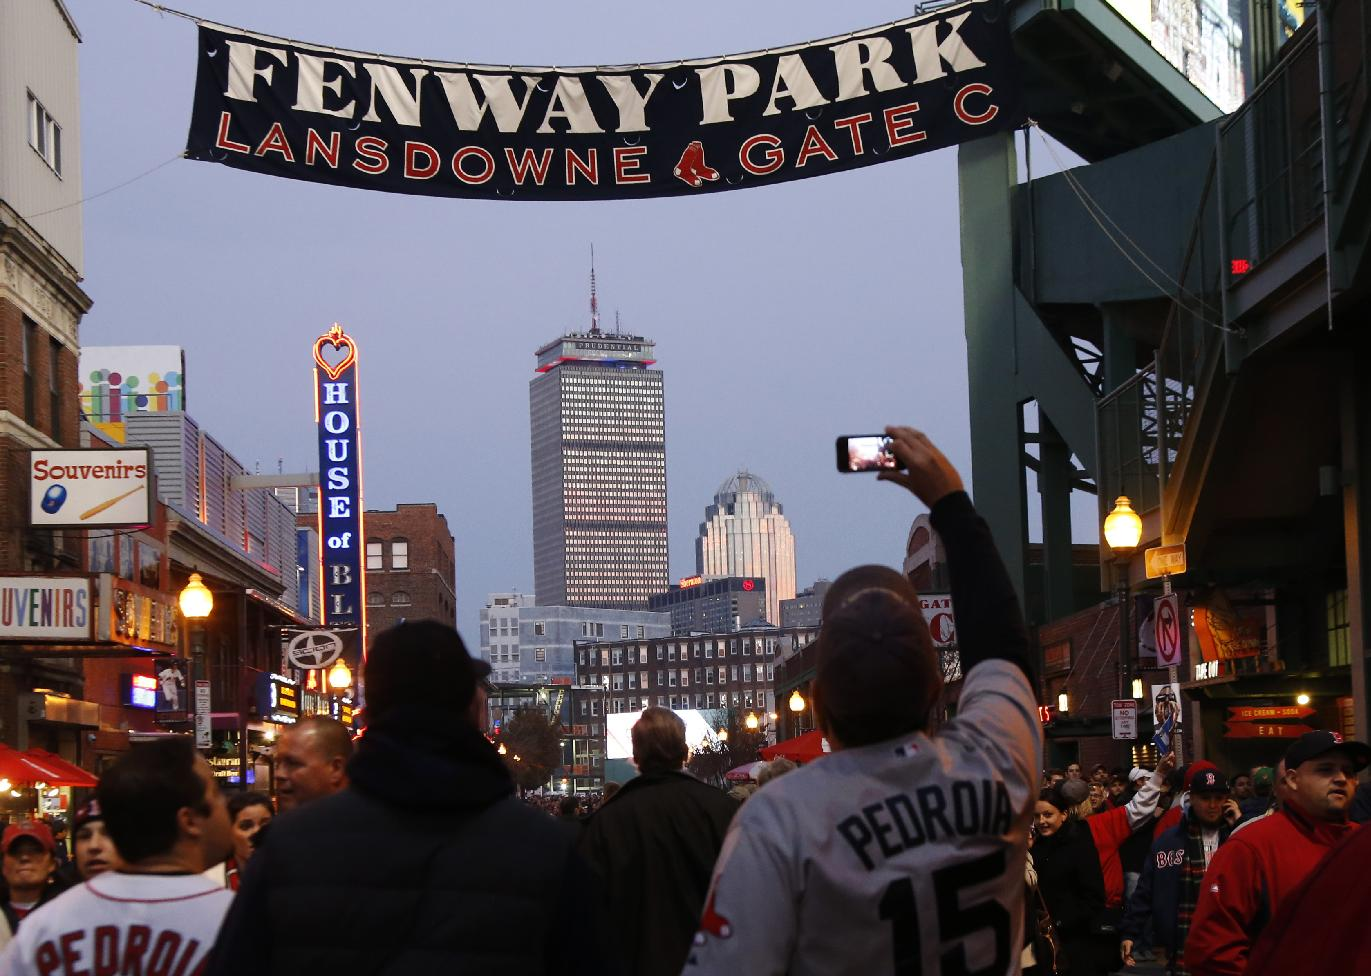 Fans shoot cell phone photos outside of Fenway Park before Game 6 of baseball's World Series Wednesday, Oct. 30, 2013, in Boston